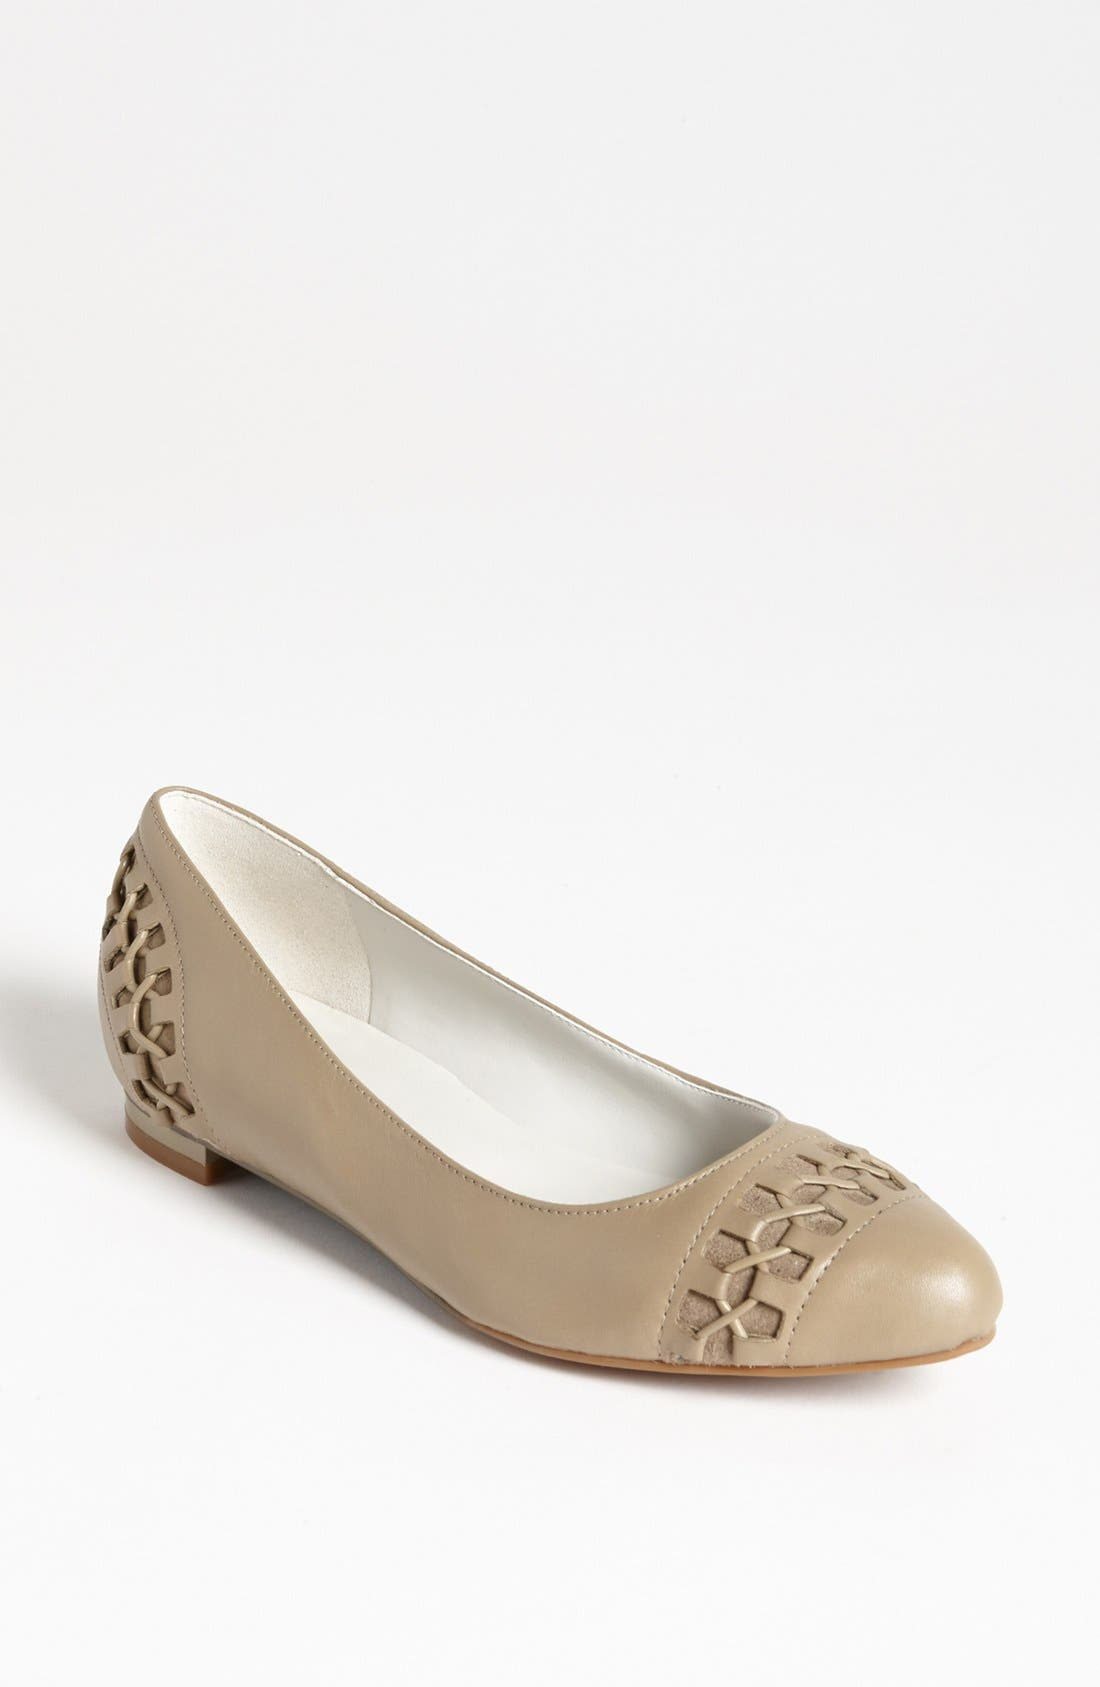 Alternate Image 1 Selected - Maria Sharapova by Cole Haan 'Baily' Ballet Flat